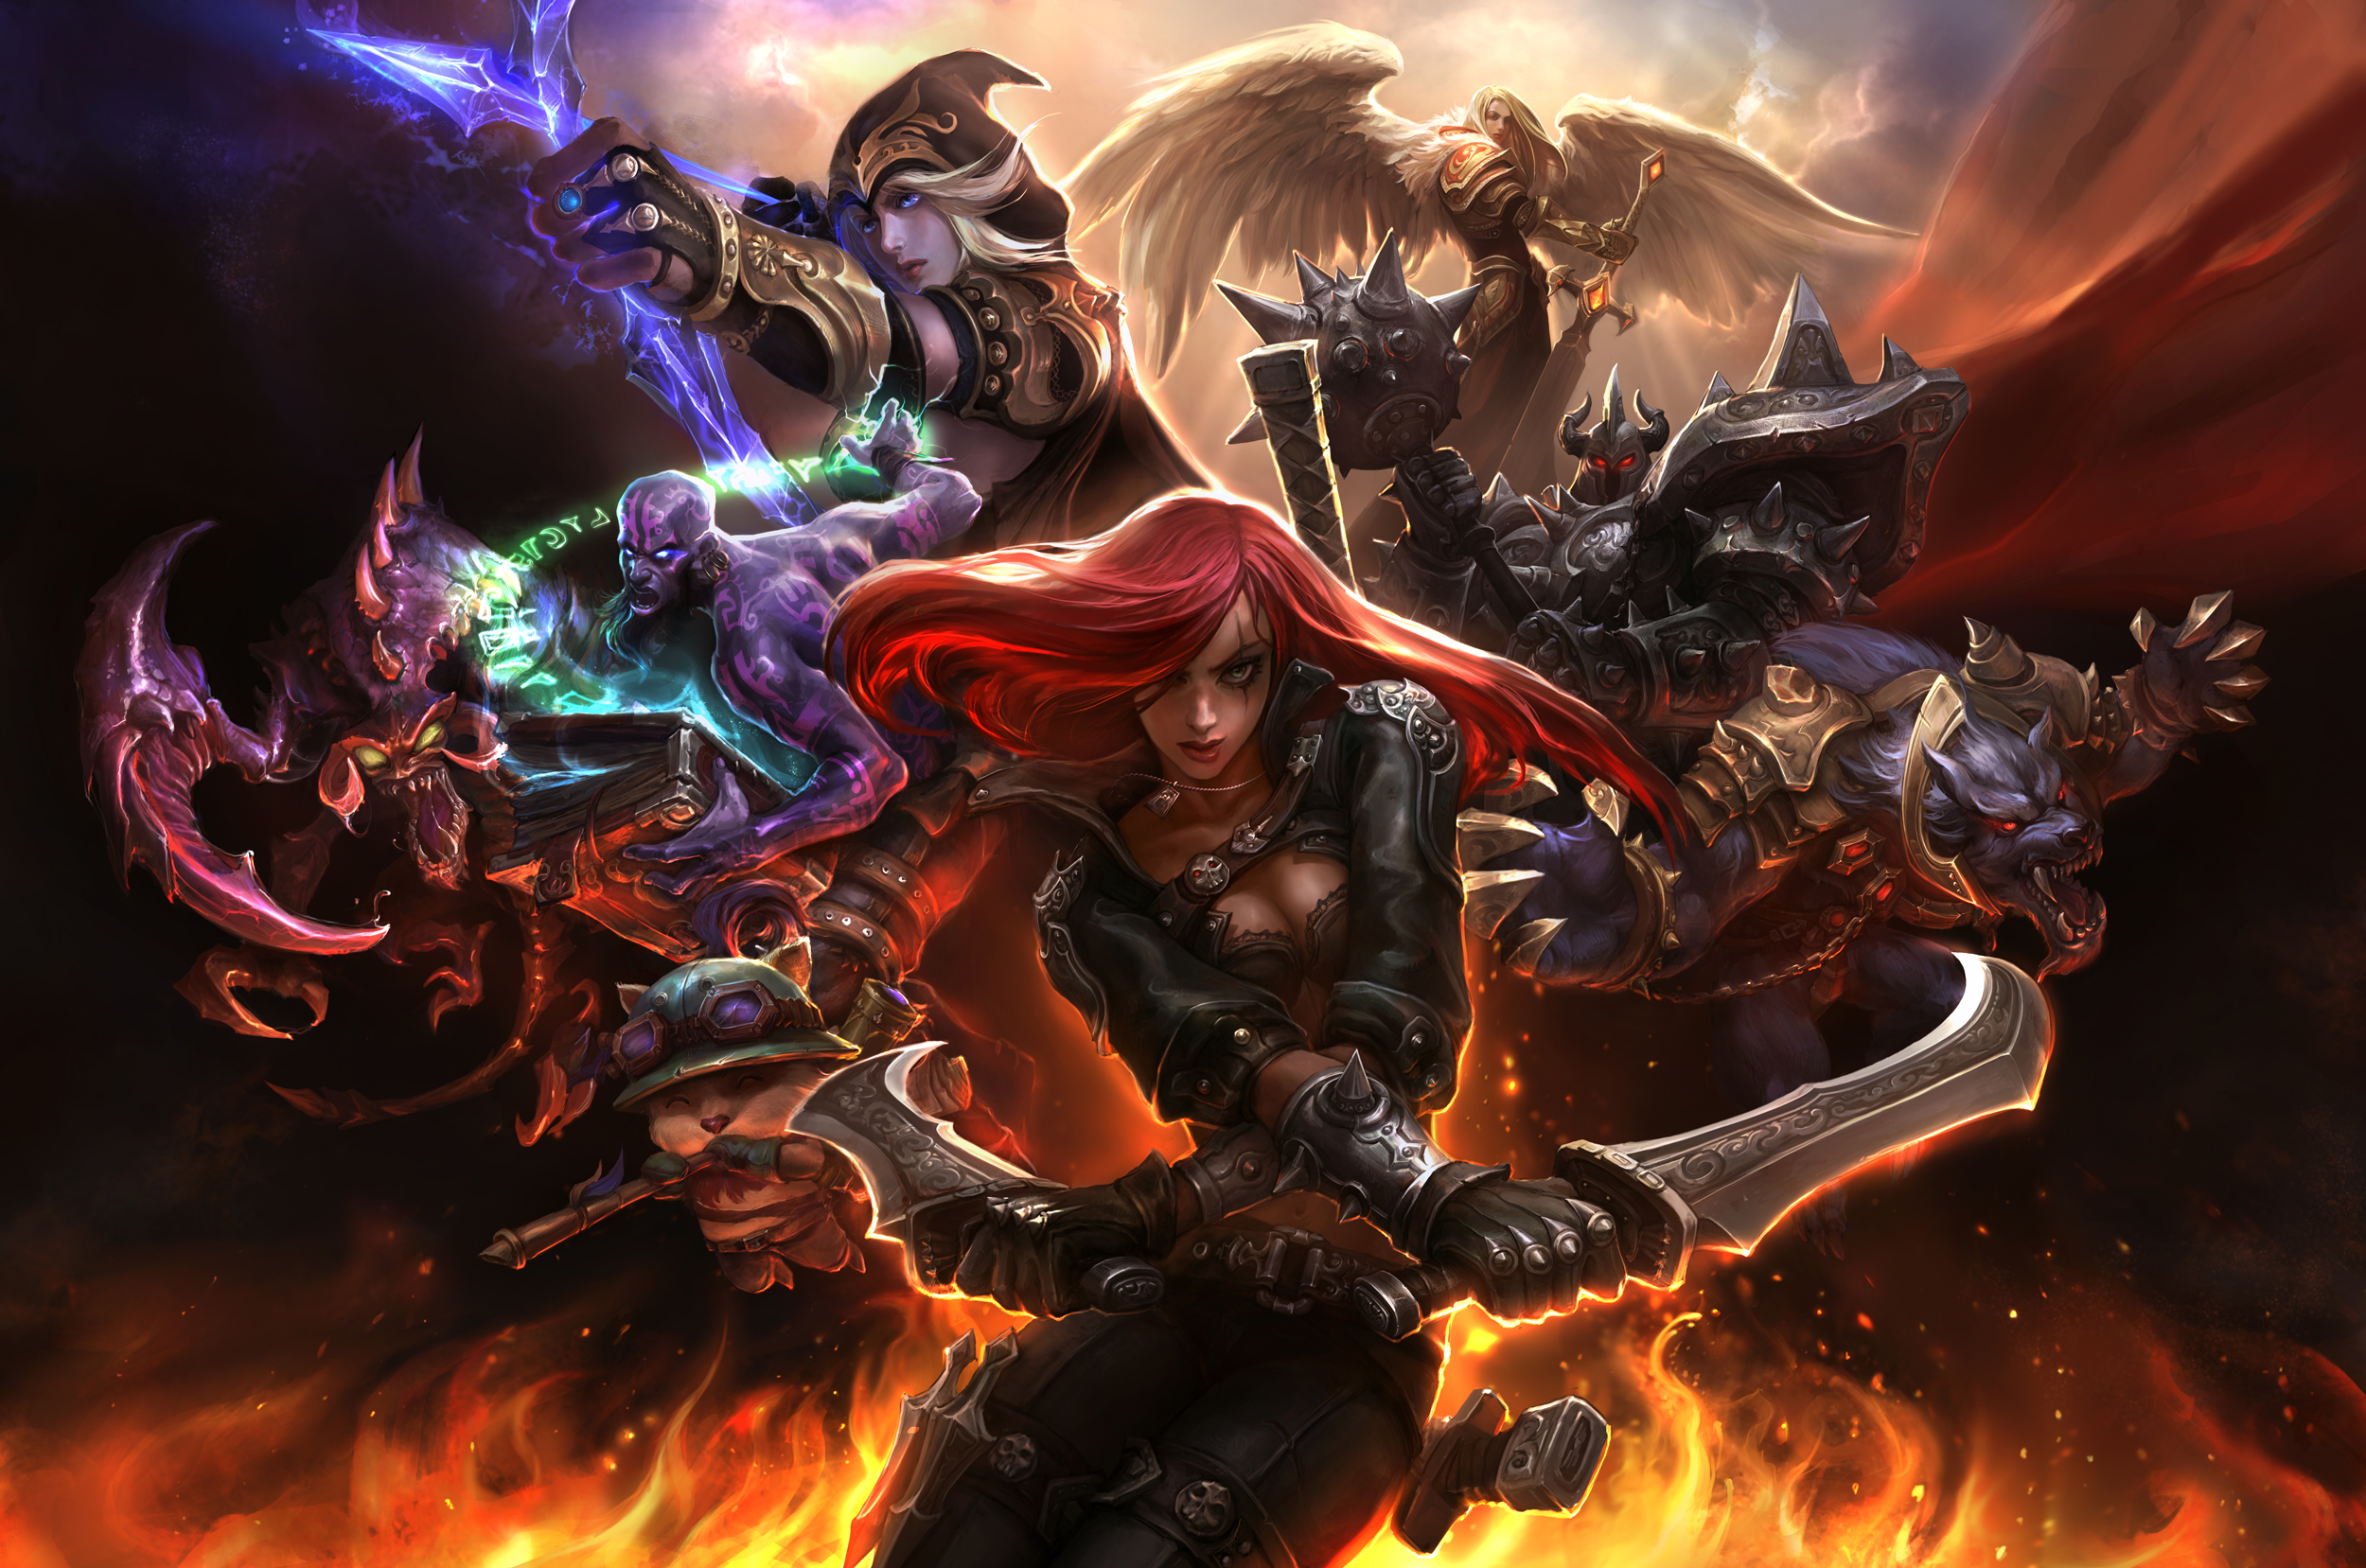 Free Download 161 Katarina League Of Legends Hd Wallpapers